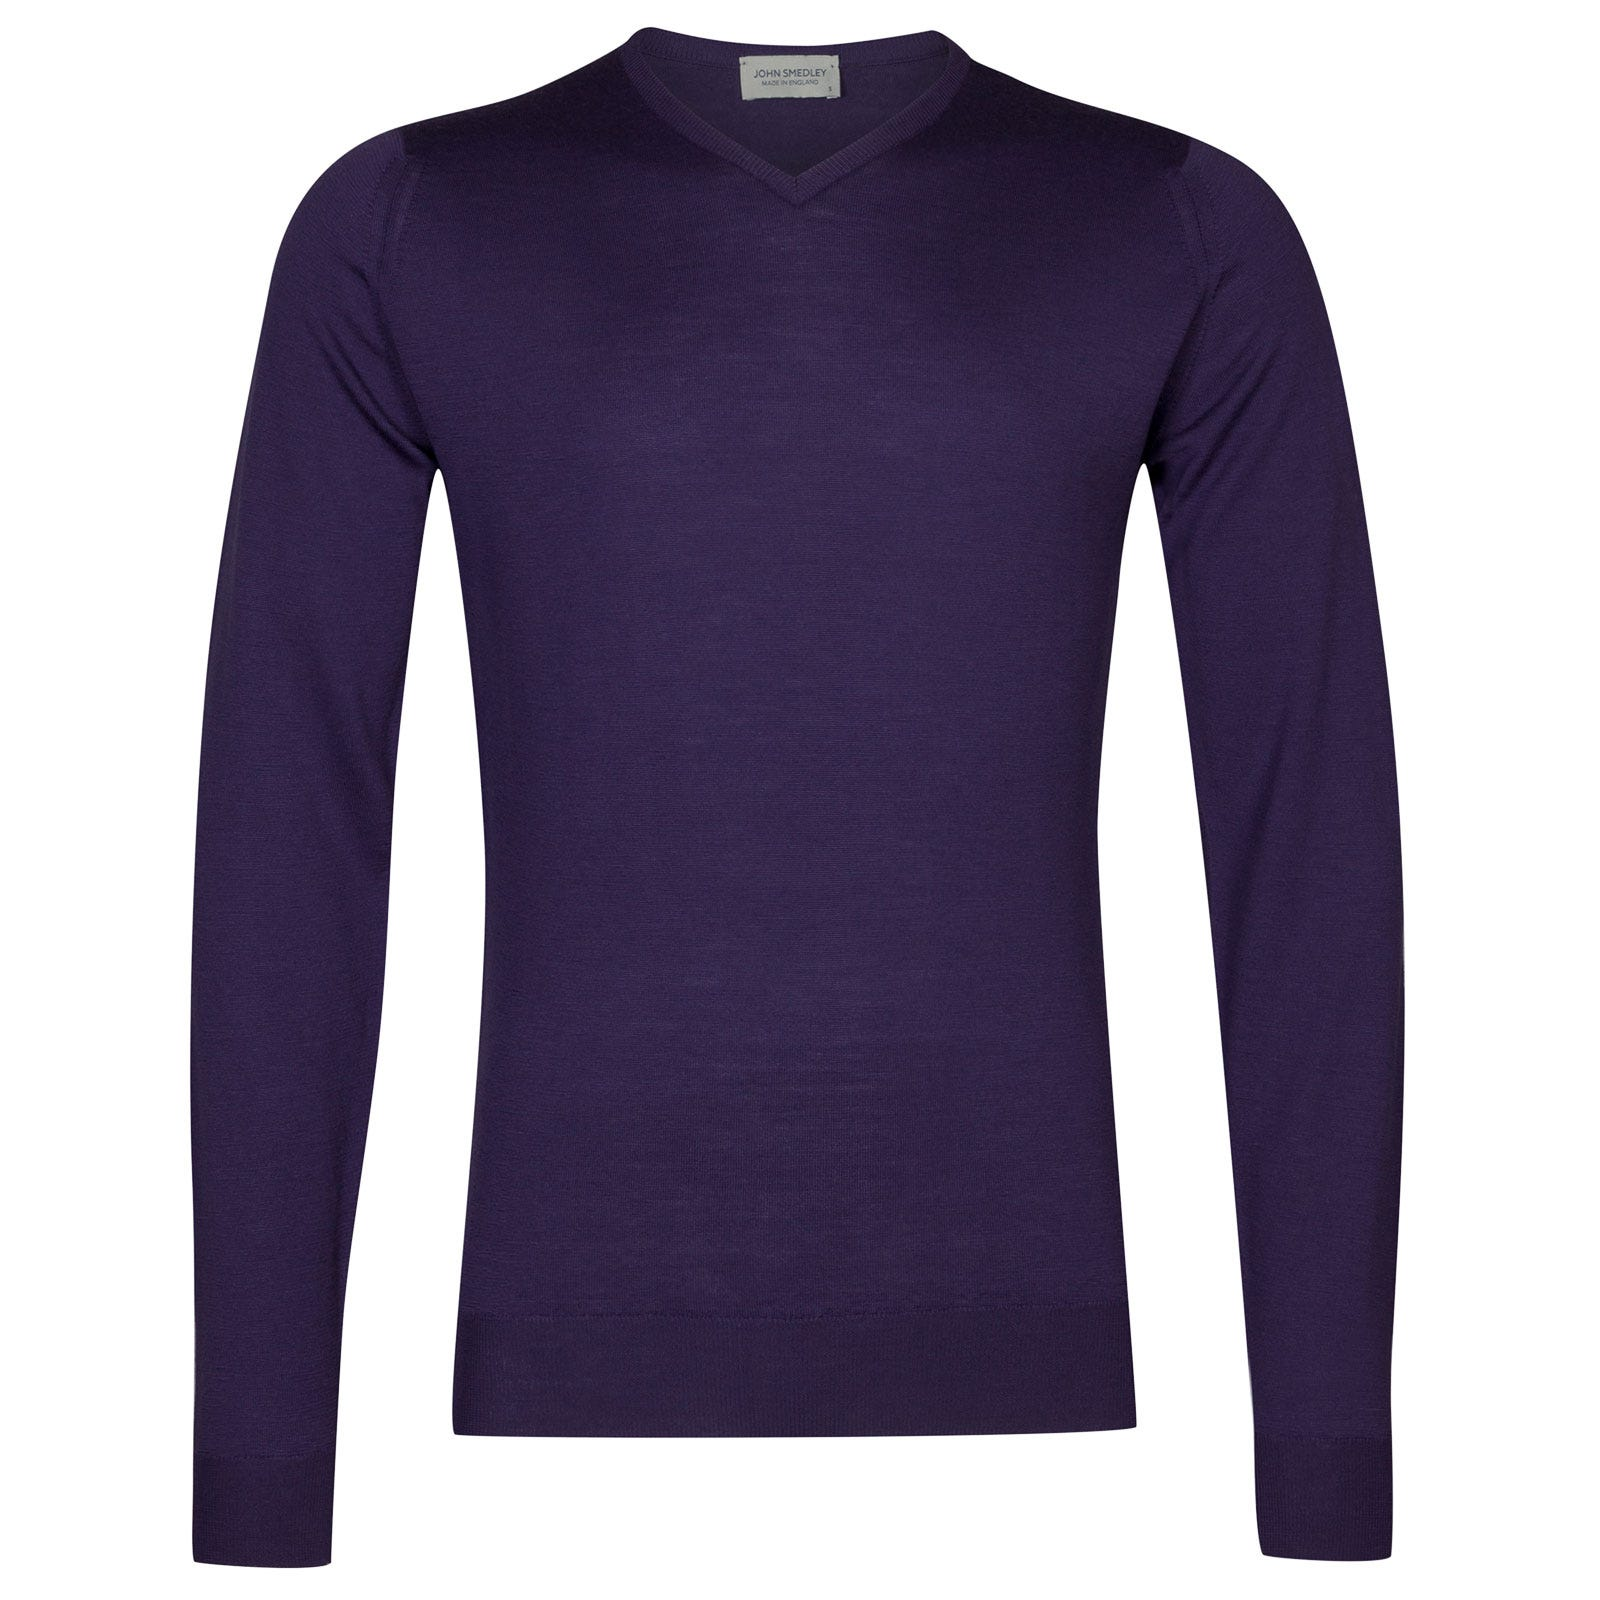 John Smedley shipton Merino Wool Pullover in Elderberry Purple-XL